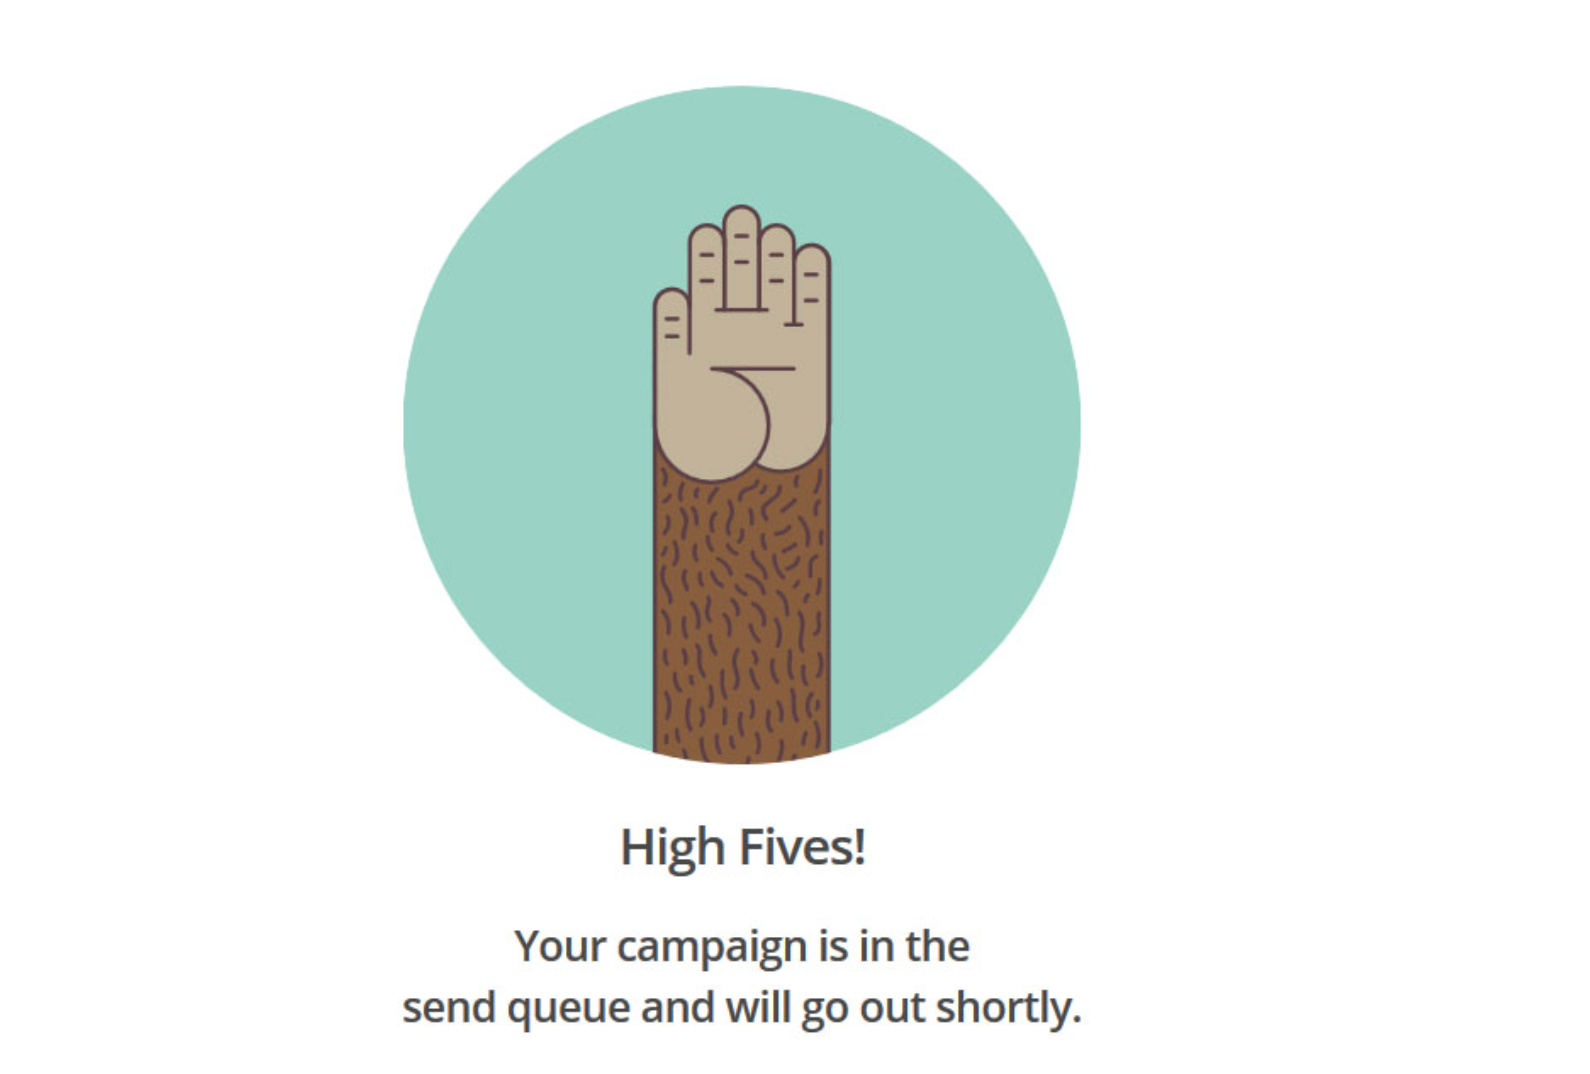 MailChimp UX Writing Example